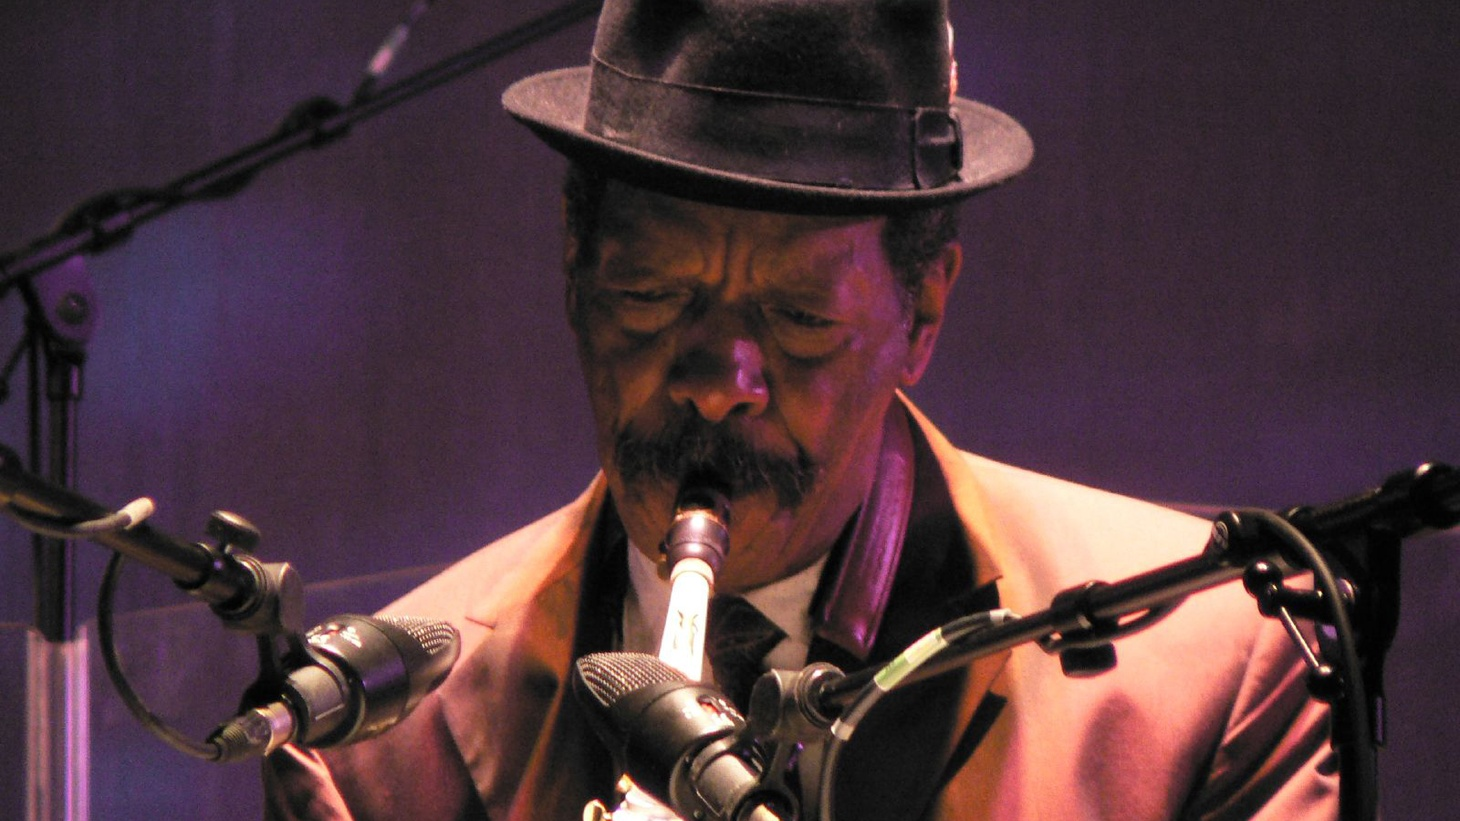 LeRoy Downs will be joining me on Strictly Jazz for a 3 hr. tribute to Ornette Coleman, who died last Wednesday at the age of 85.